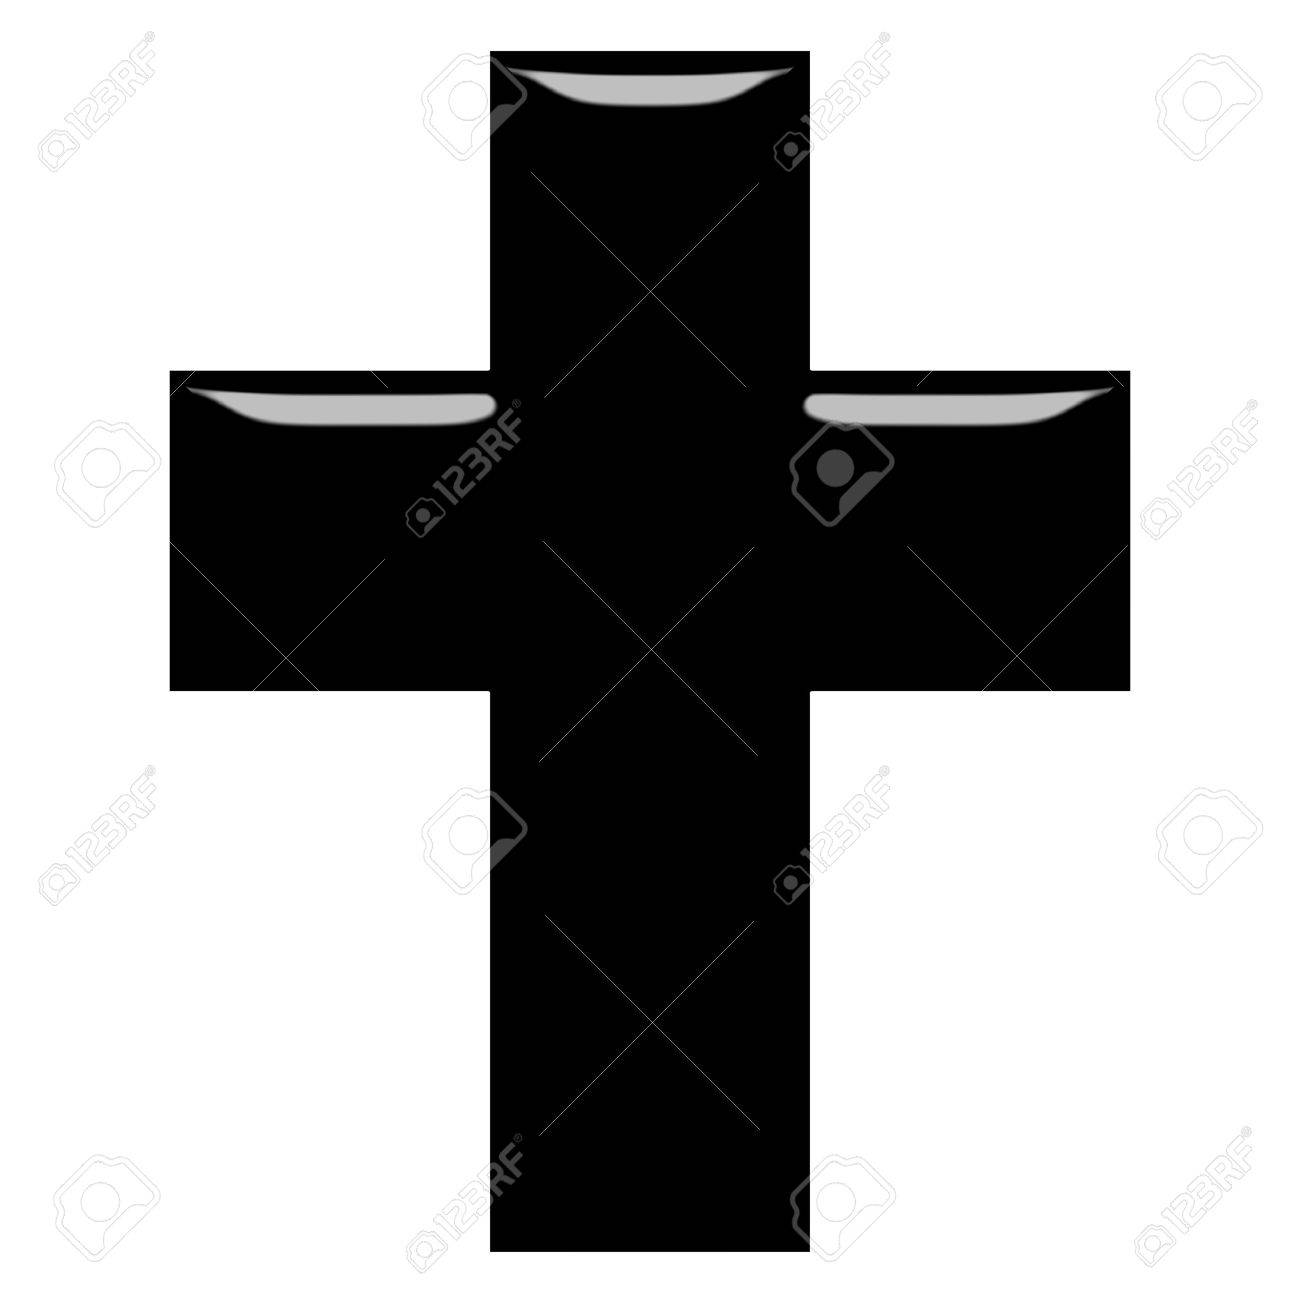 3d Cross Stock Photo, Picture And Royalty Free Image. Image 7404046.